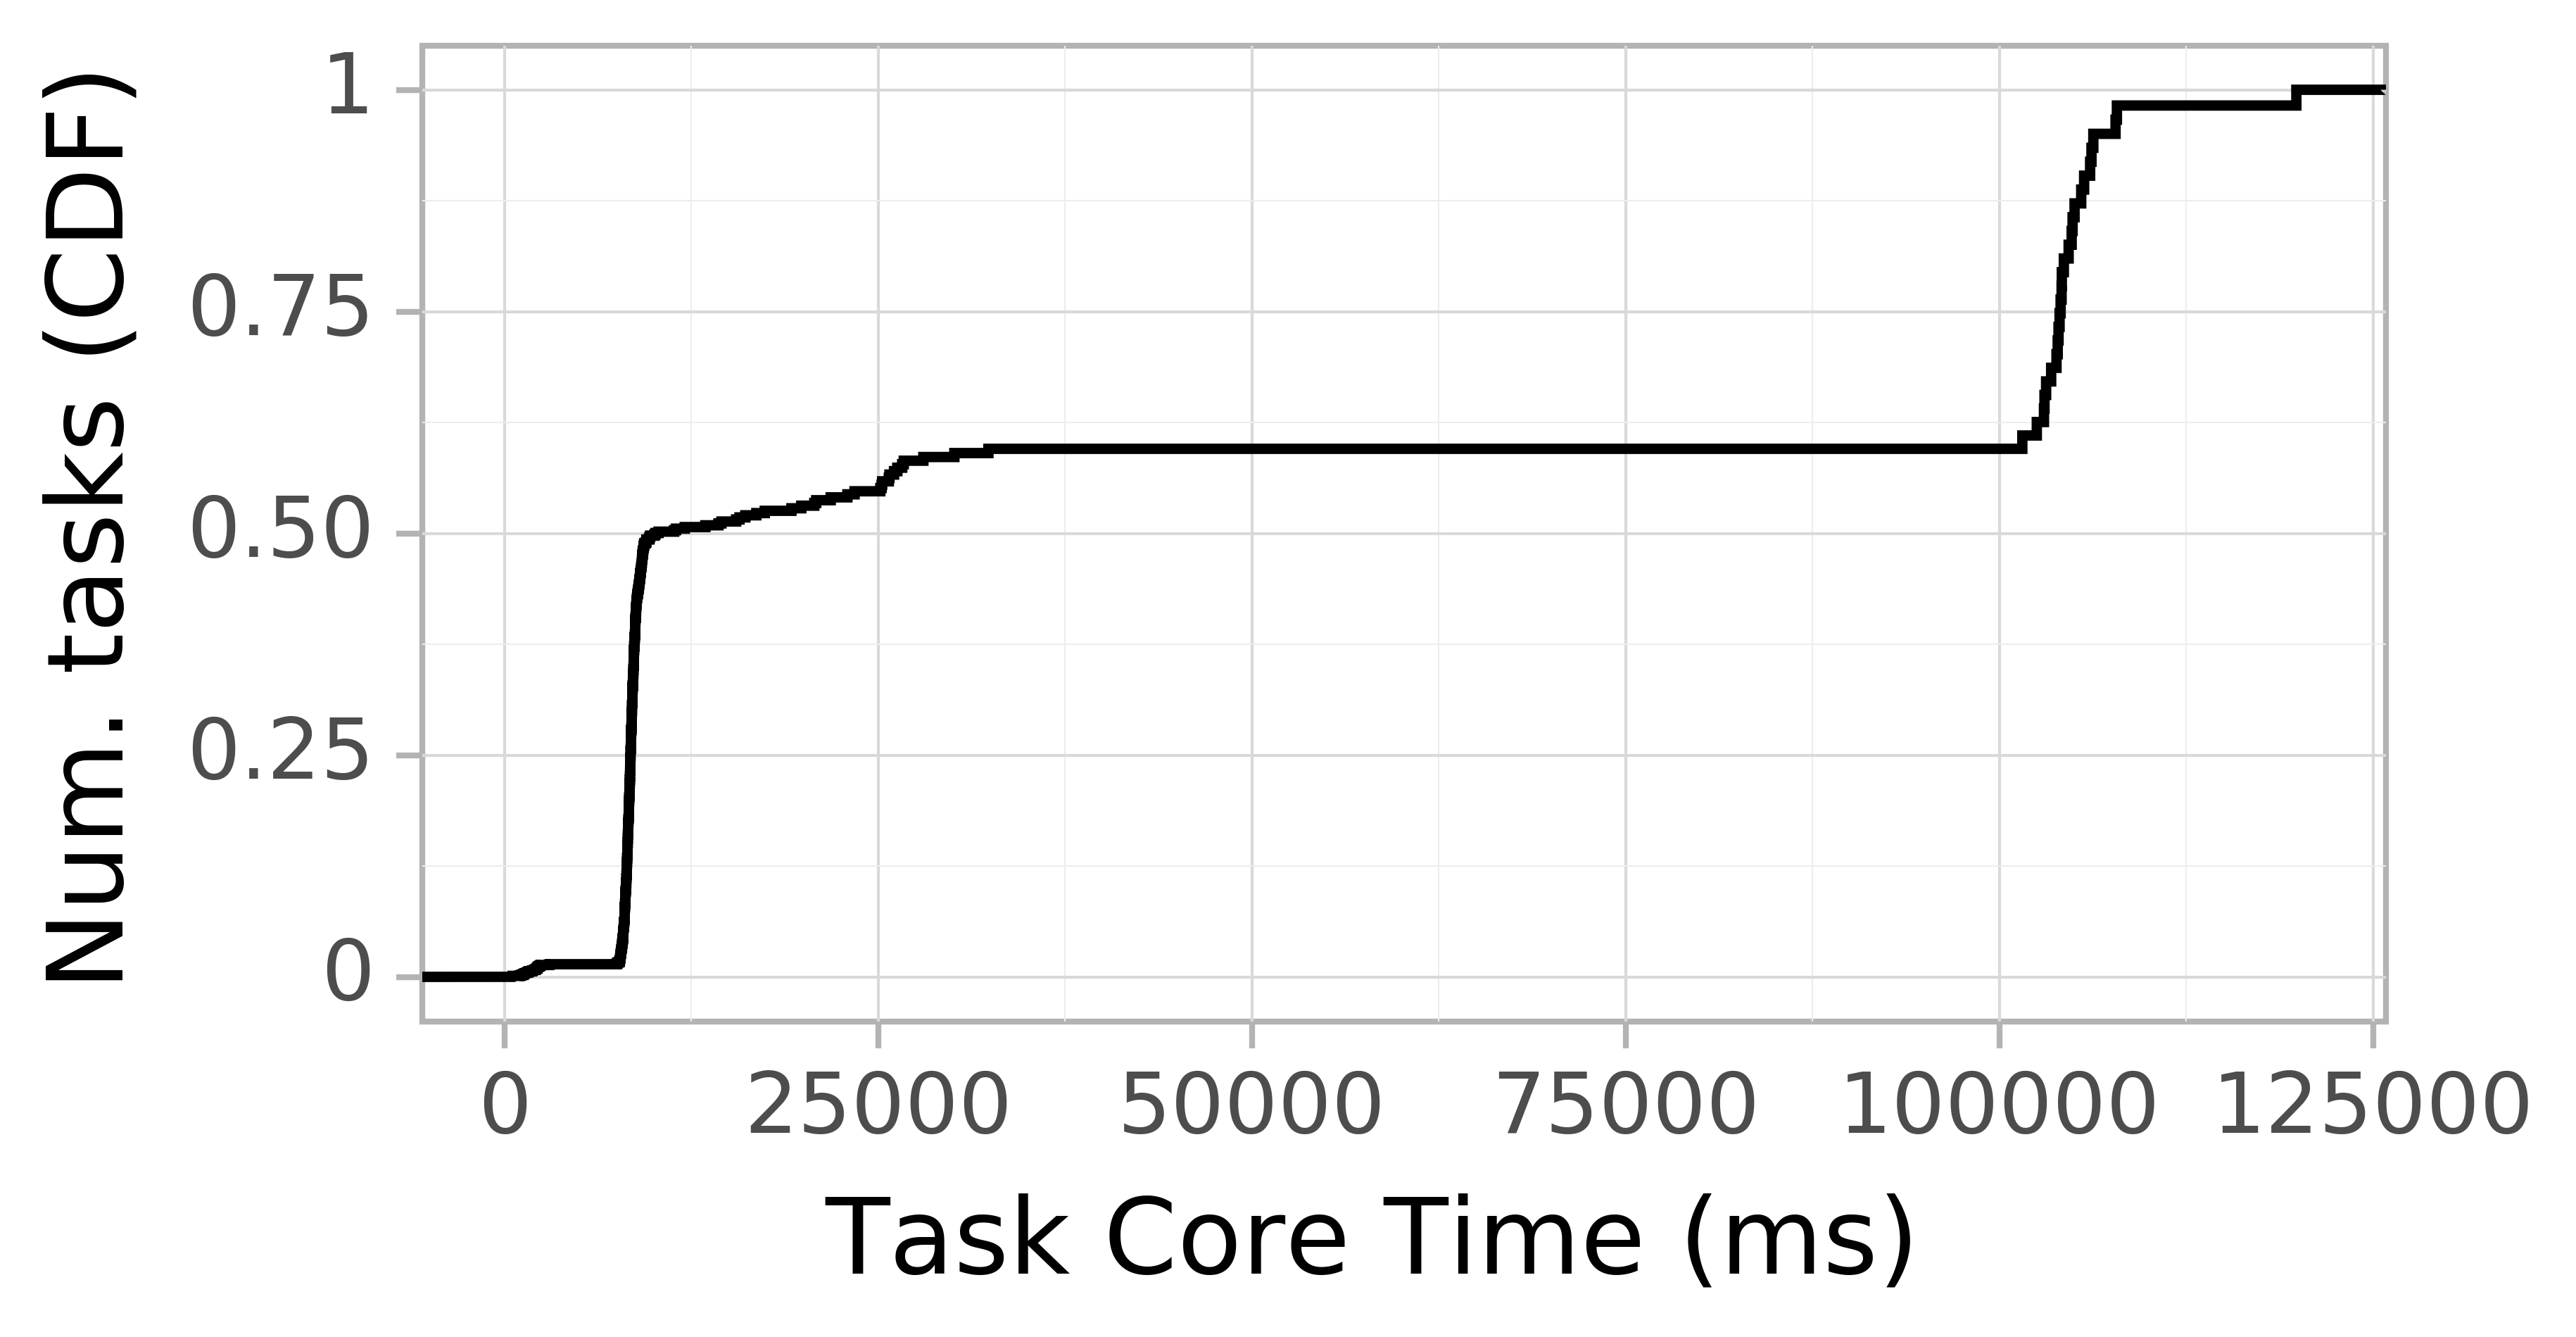 task resource time CDF graph for the askalon-new_ee29 trace.